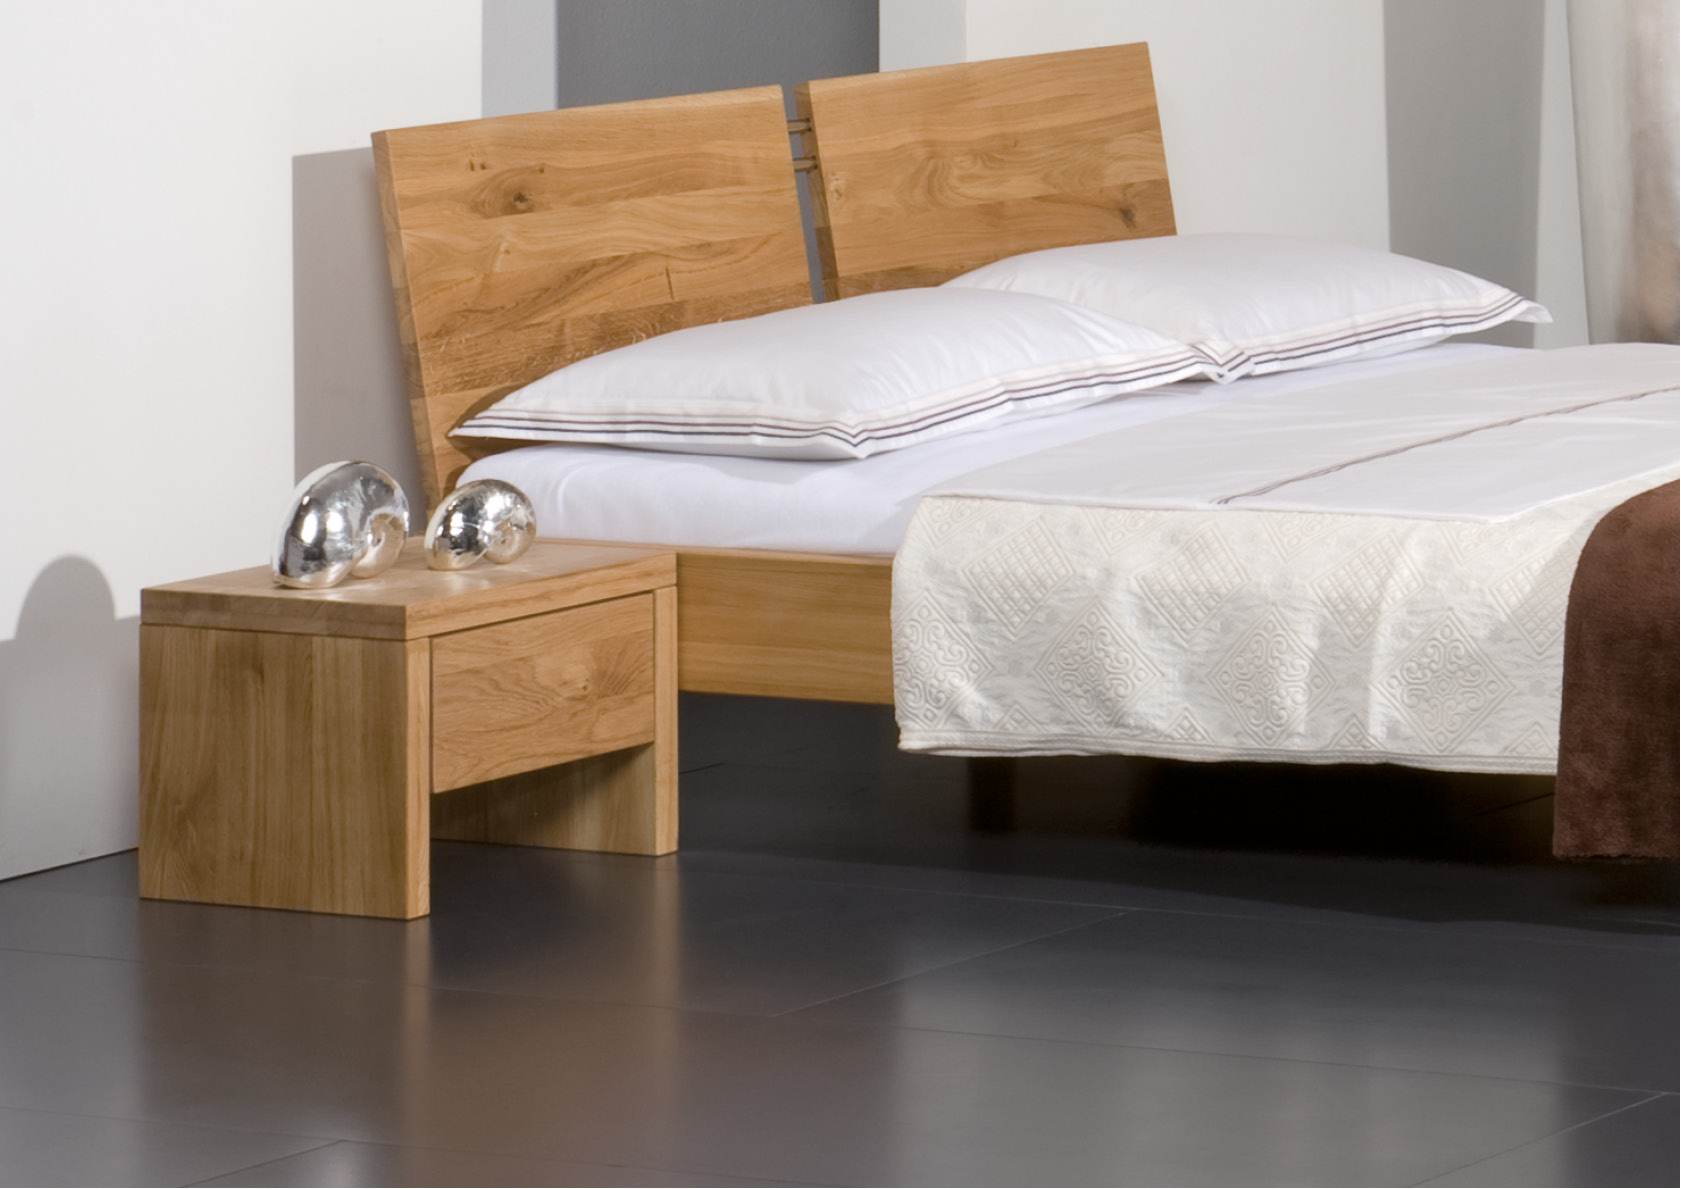 nachttisch asti betten thoba handels gmbh. Black Bedroom Furniture Sets. Home Design Ideas